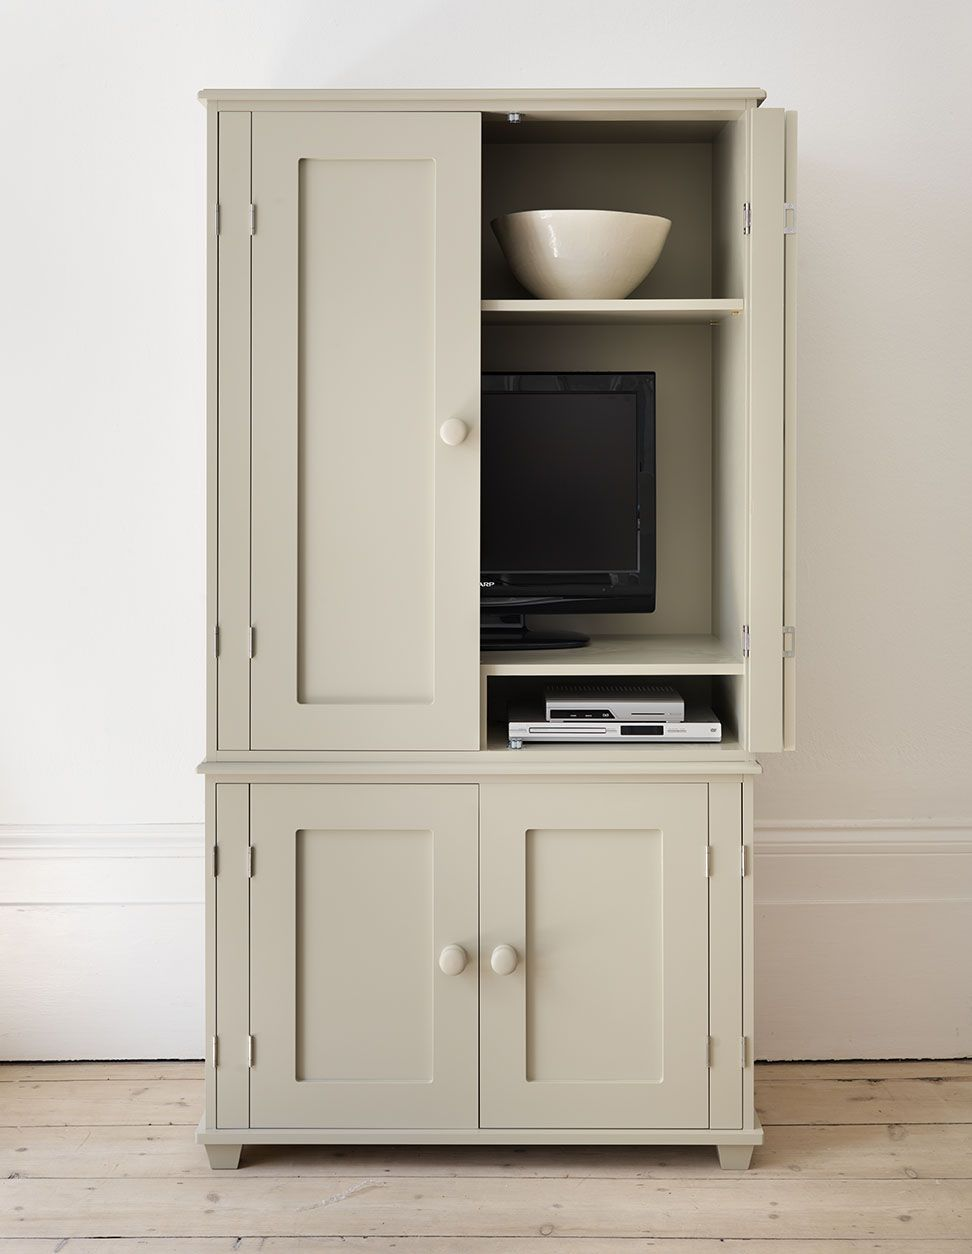 But Armoir New England Television Armoire But Not Sure The Doors Will Open